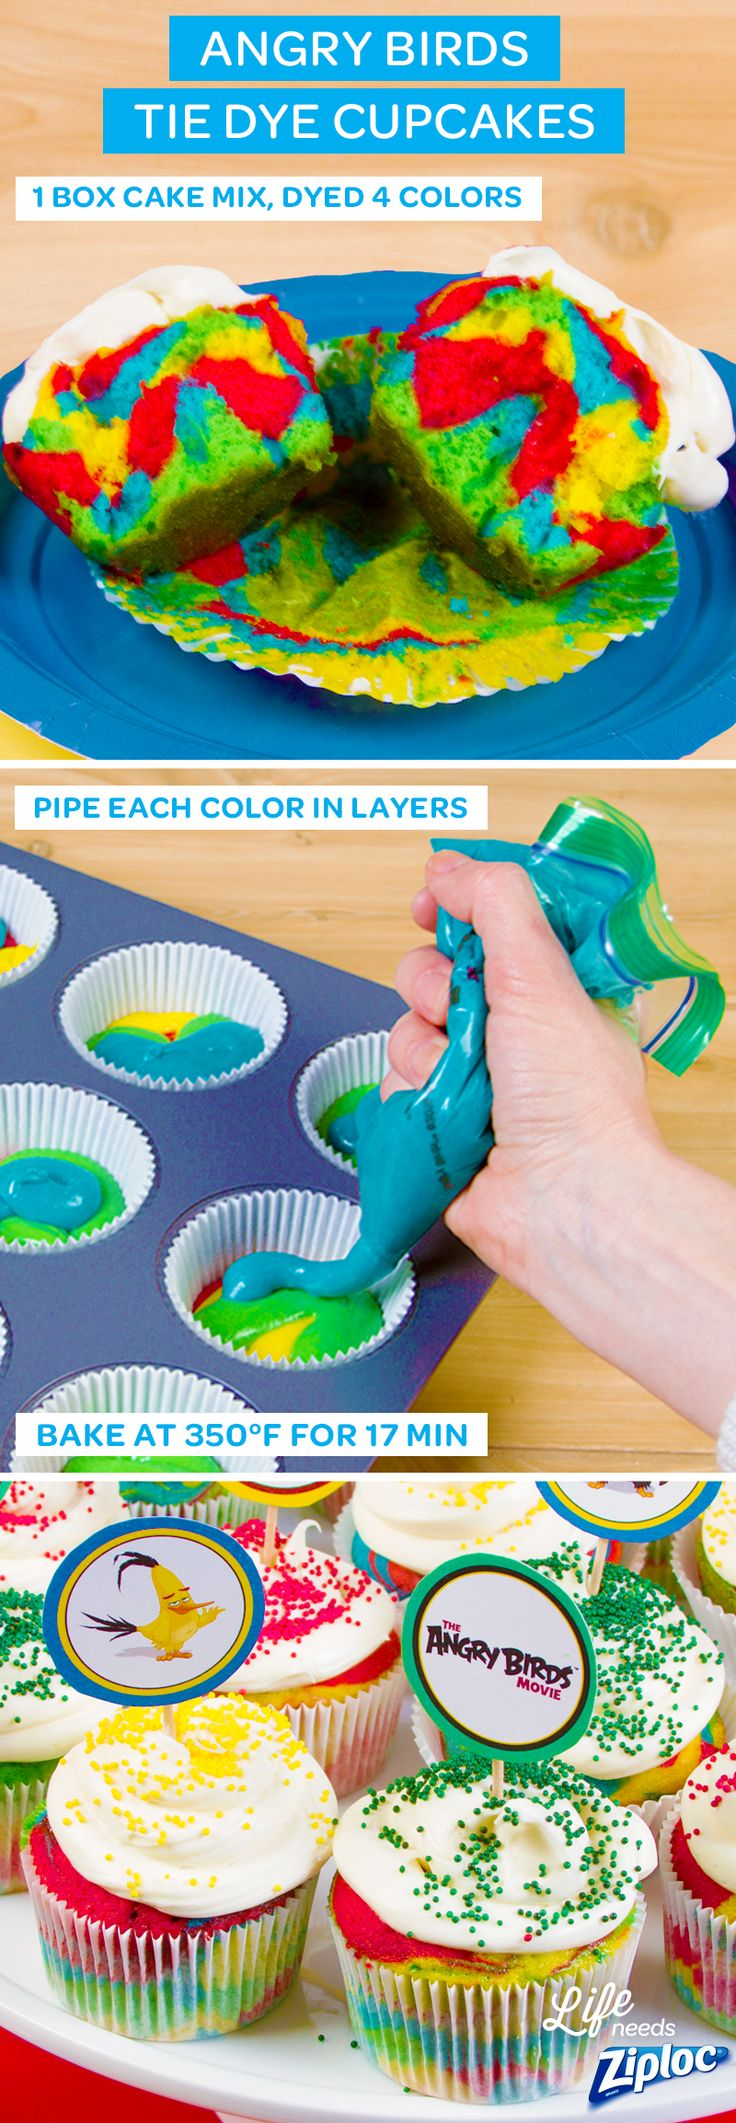 These fun cupcakes are so easy to make. Just mix 1 box of cake batter evenly into 4 different Ziploc® containers. Add food coloring to each bowl to make red, blue, yellow and green. Spoon the different colors of cake batter right inside of a Ziploc® bag. Pipe and layer each color into muffin tins. They're the perfect dessert for birthday or end-of-school parties. Just finish with frosting, sprinkles, and our Angry Birds cupcake toppers. See The Angry Birds Movie in theaters May 20th. ©2016…